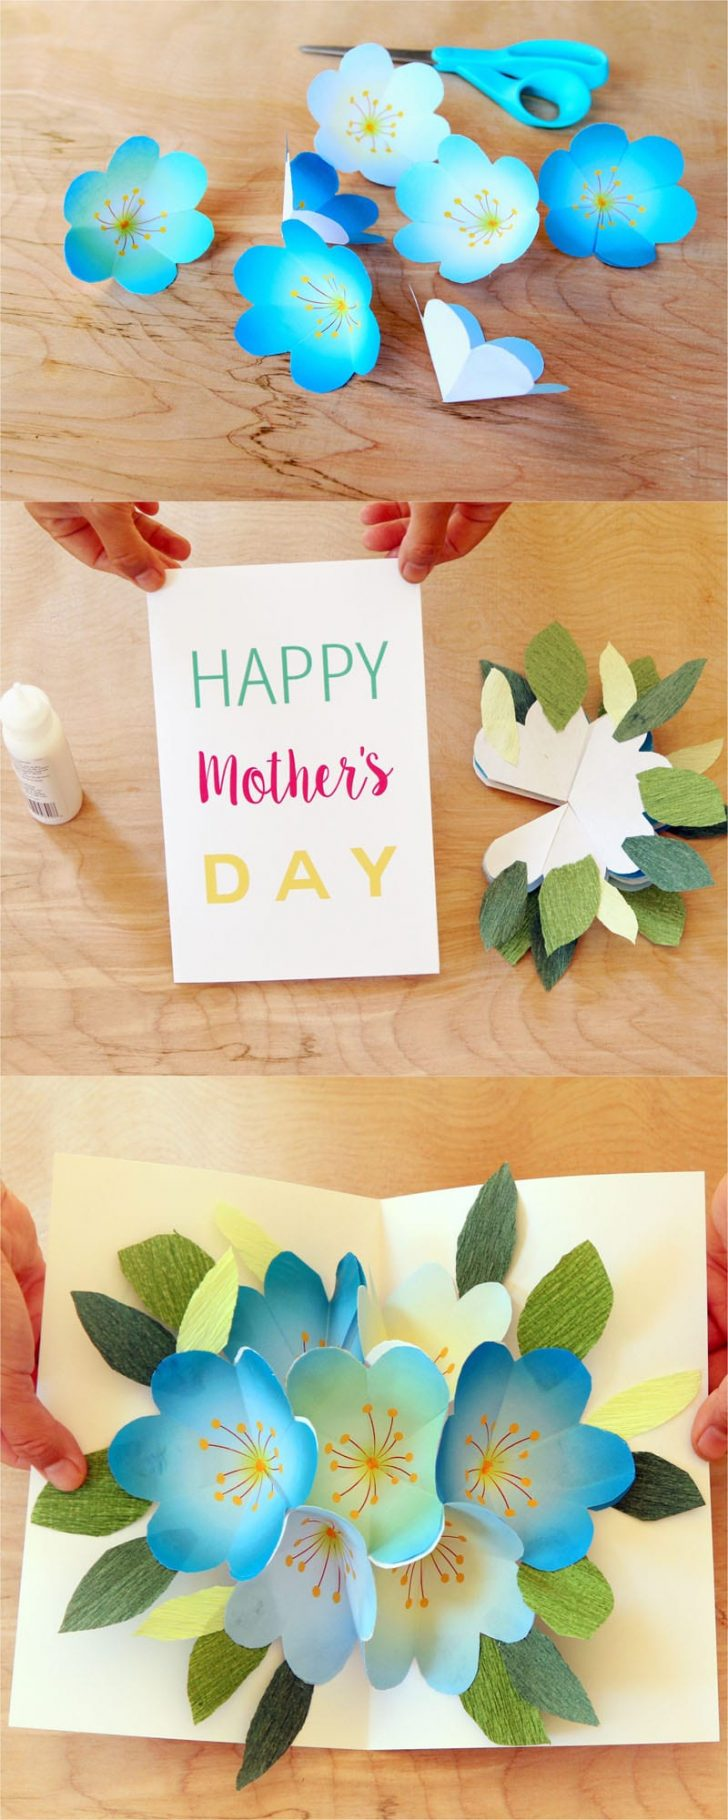 Free Printable Love Greeting Cards